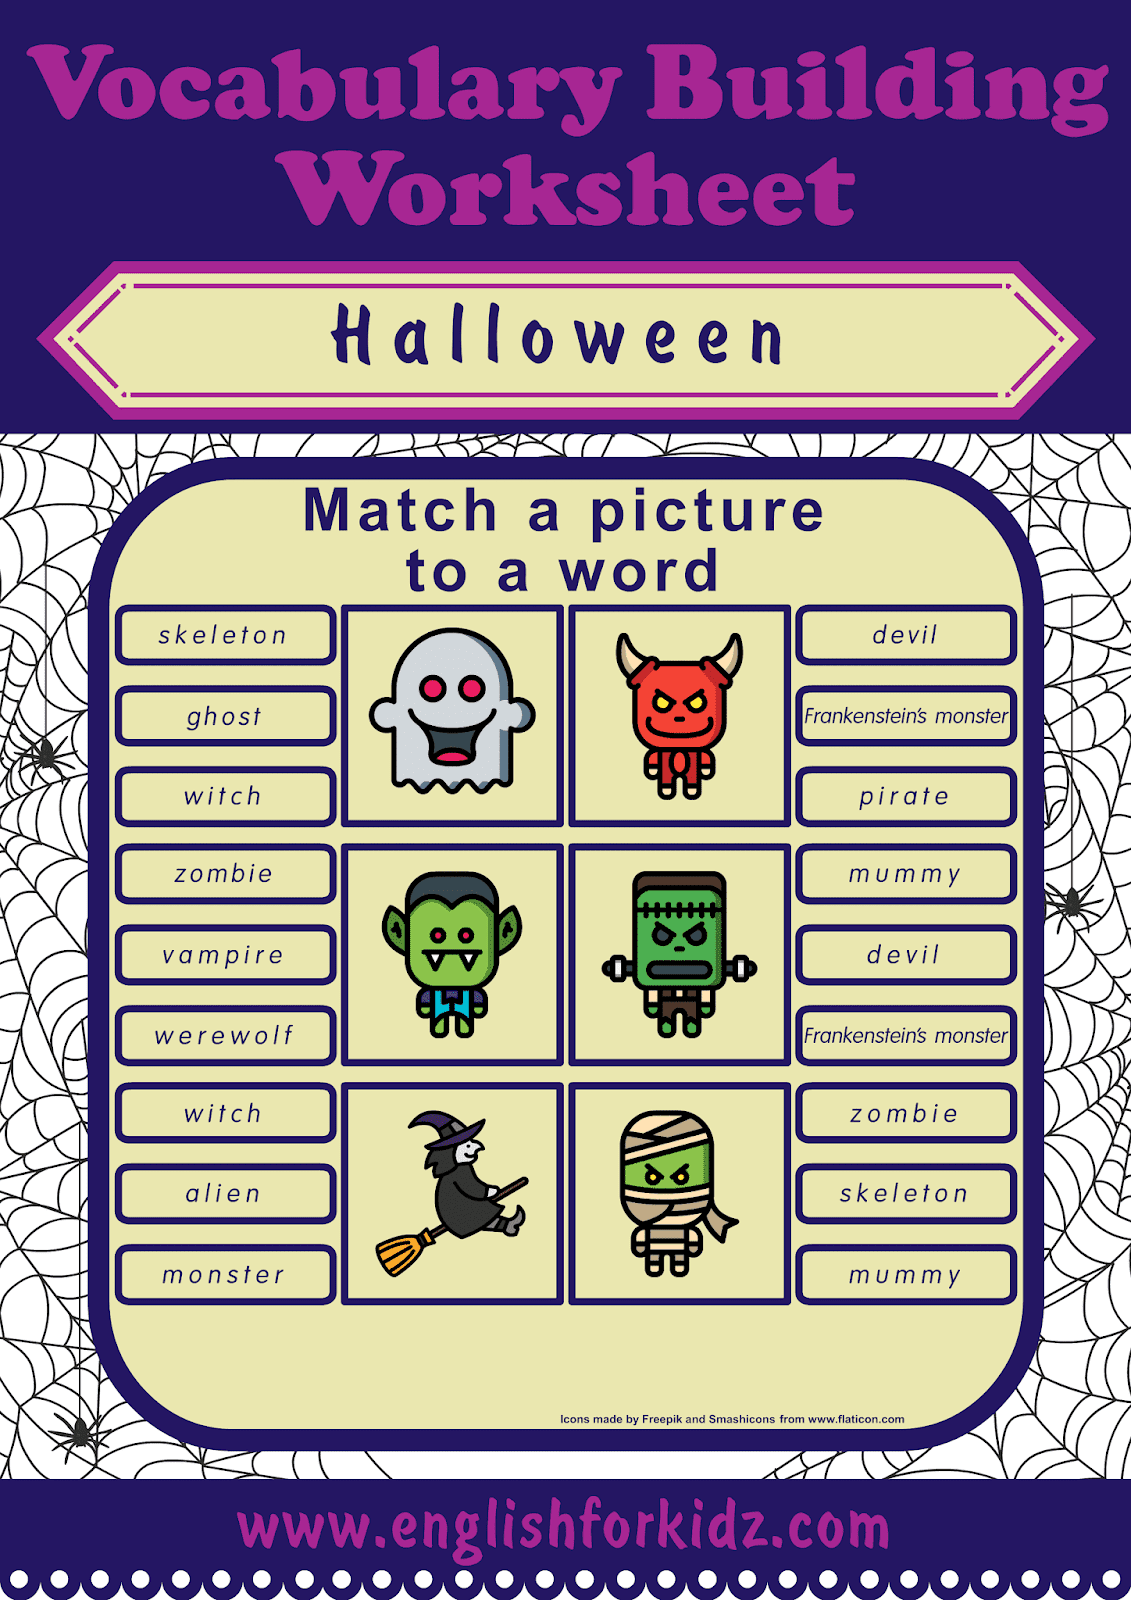 English For Kids Step By Step Halloween Worksheets